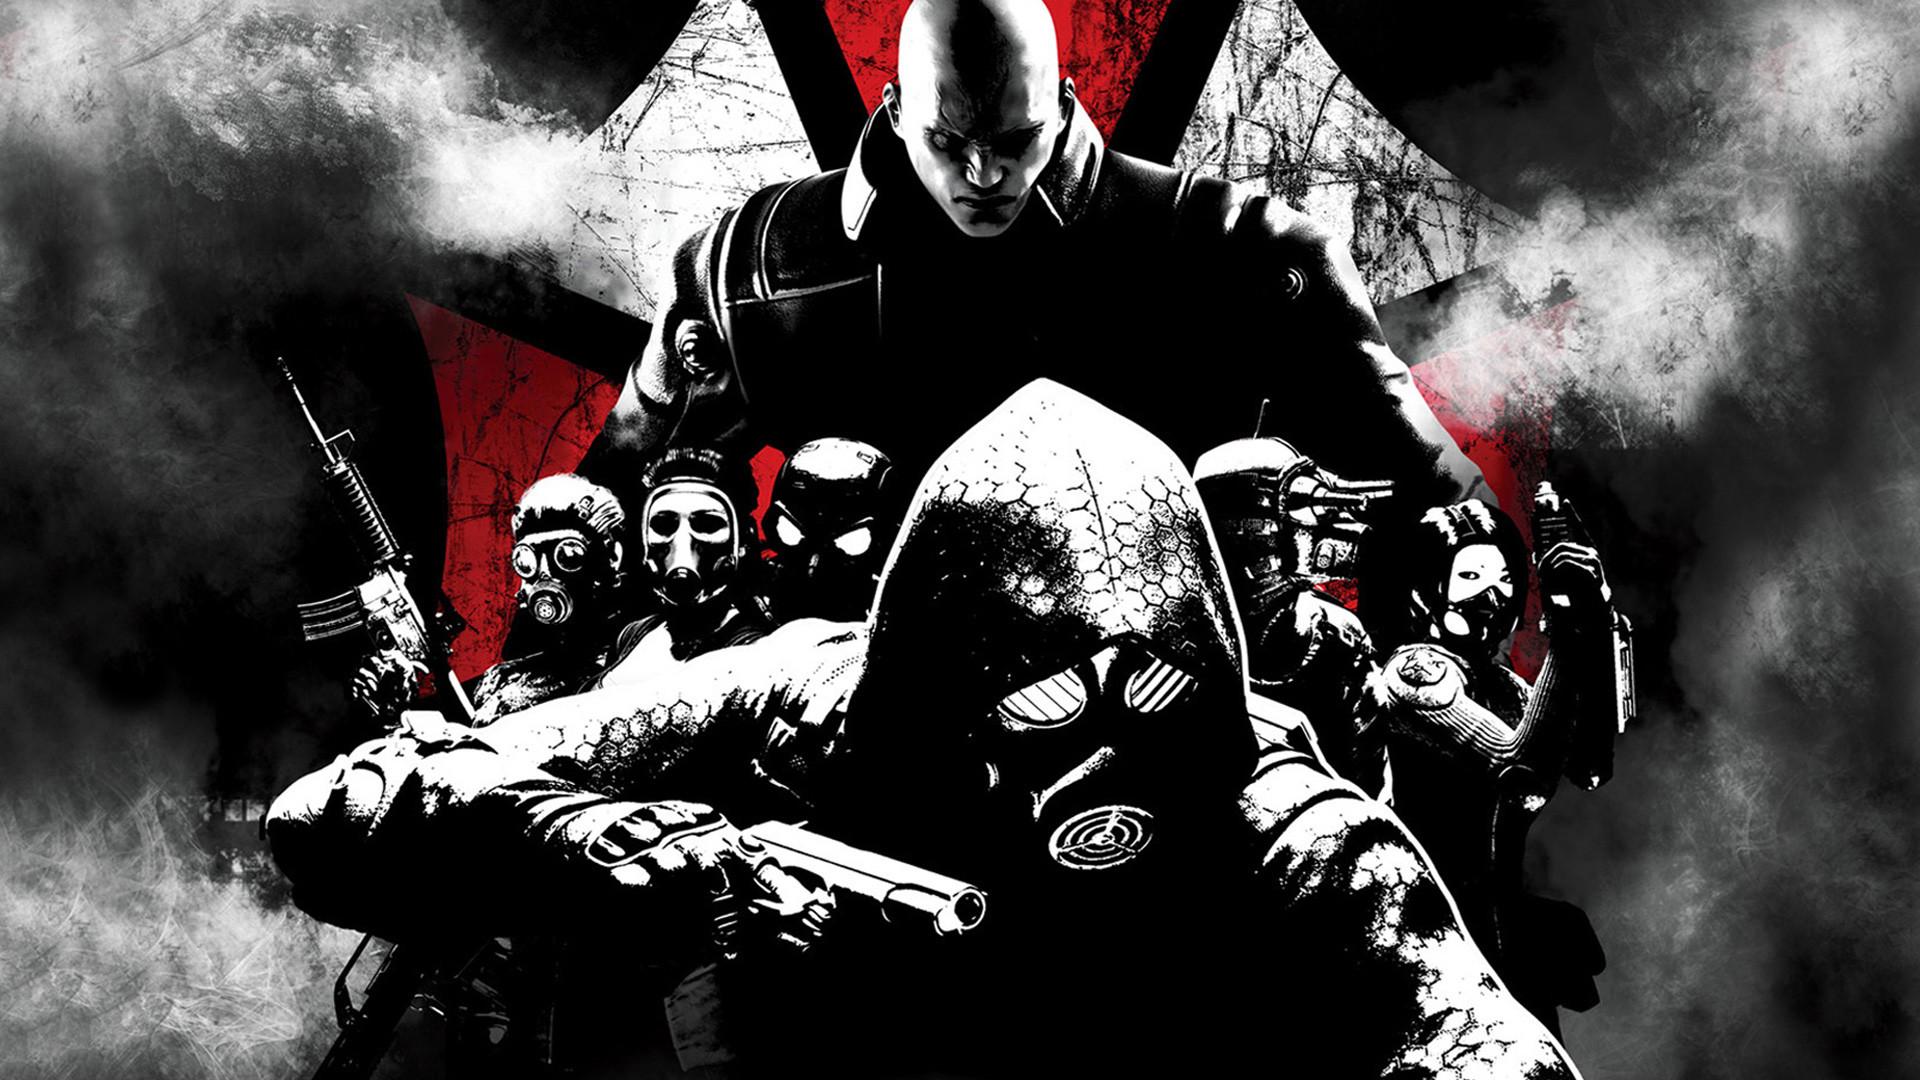 Res: 1920x1080, Resident Evil: Operation Raccoon City HD Wallpapers 14 - 1920 X 1080